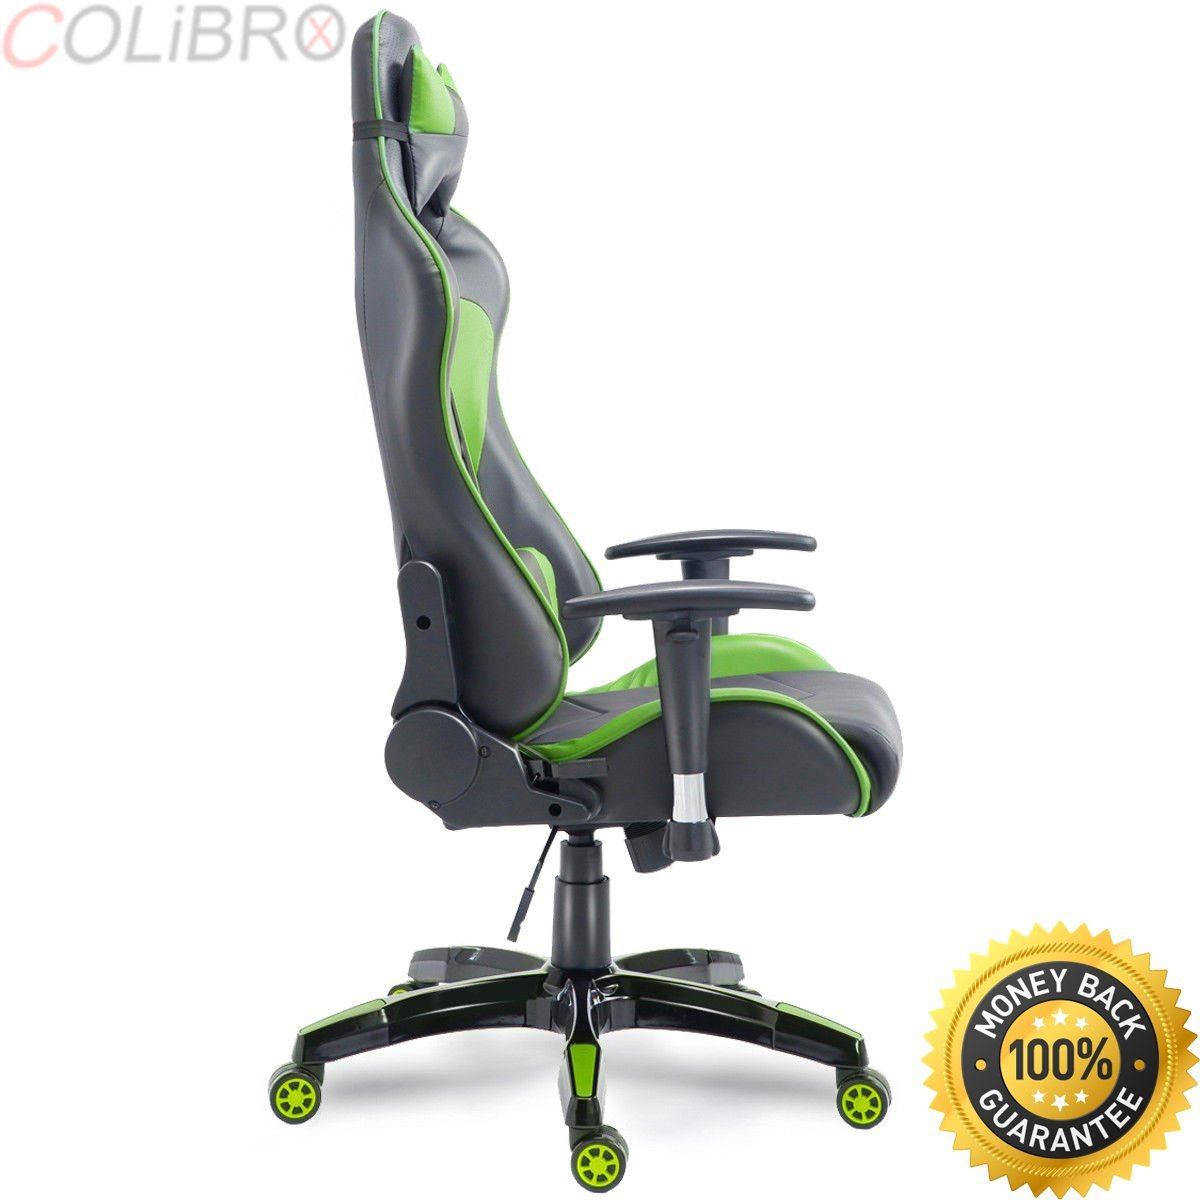 COLIBROX--High Back Executive Racing Reclining Gaming Chair Swivel PU Leather Office Chair. high back racing style gaming chair reclining office executive task computer. reclining gaming chair.